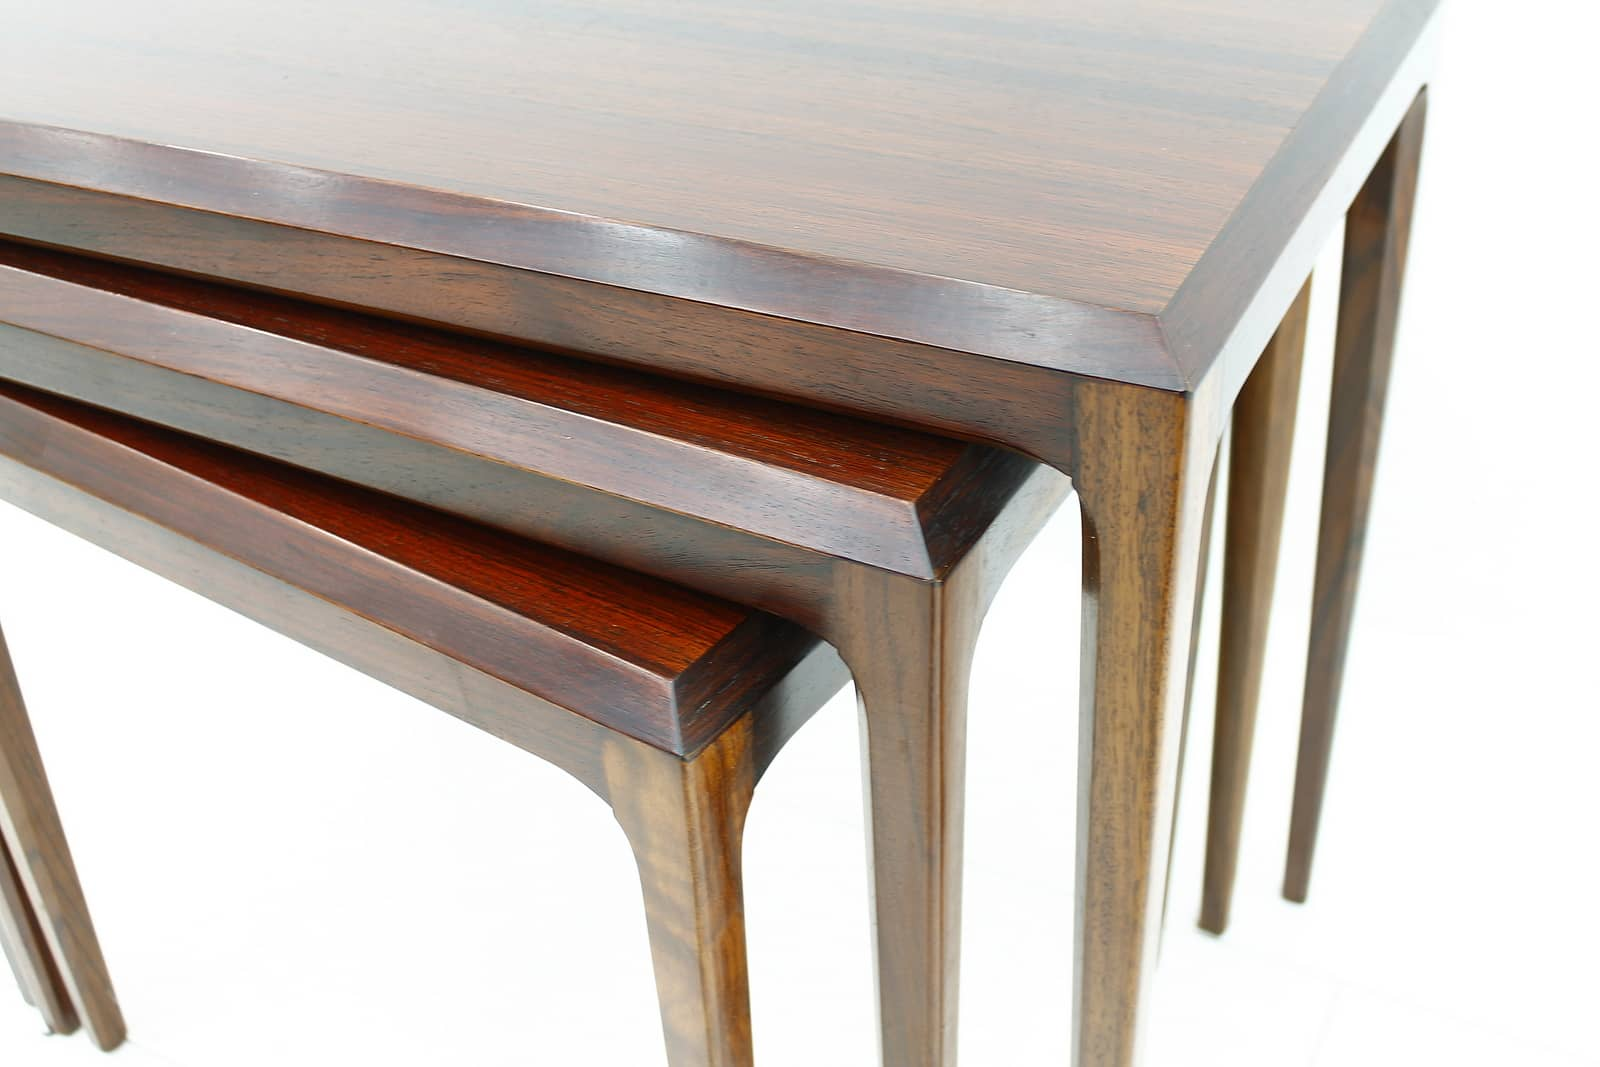 Nesting Tables by Johannes Andersen, Denmark (t)